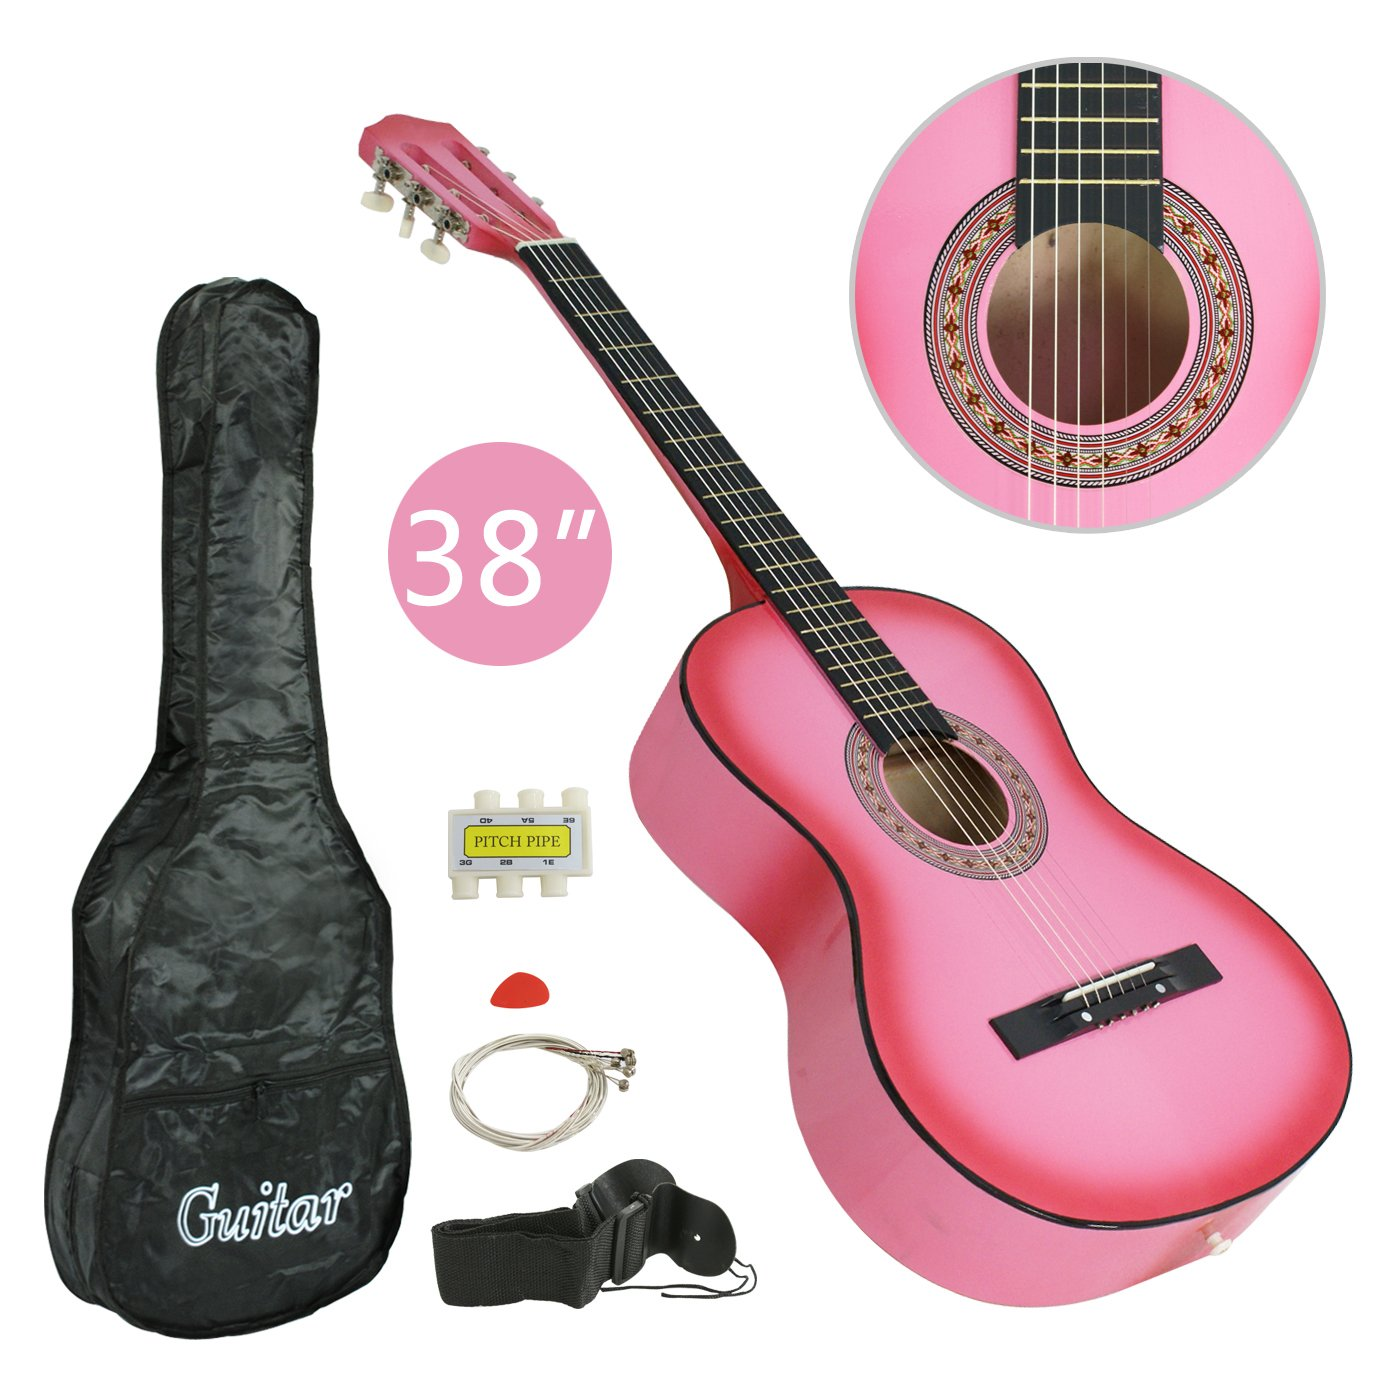 Smartxchoices PINK 6 String 38'' Acoustic Guitar Bundle with Gig Bag, Strap, Pitch Pipe, Extra Strings Set and Pick for Beginners Starter Kids Girls Youths Students